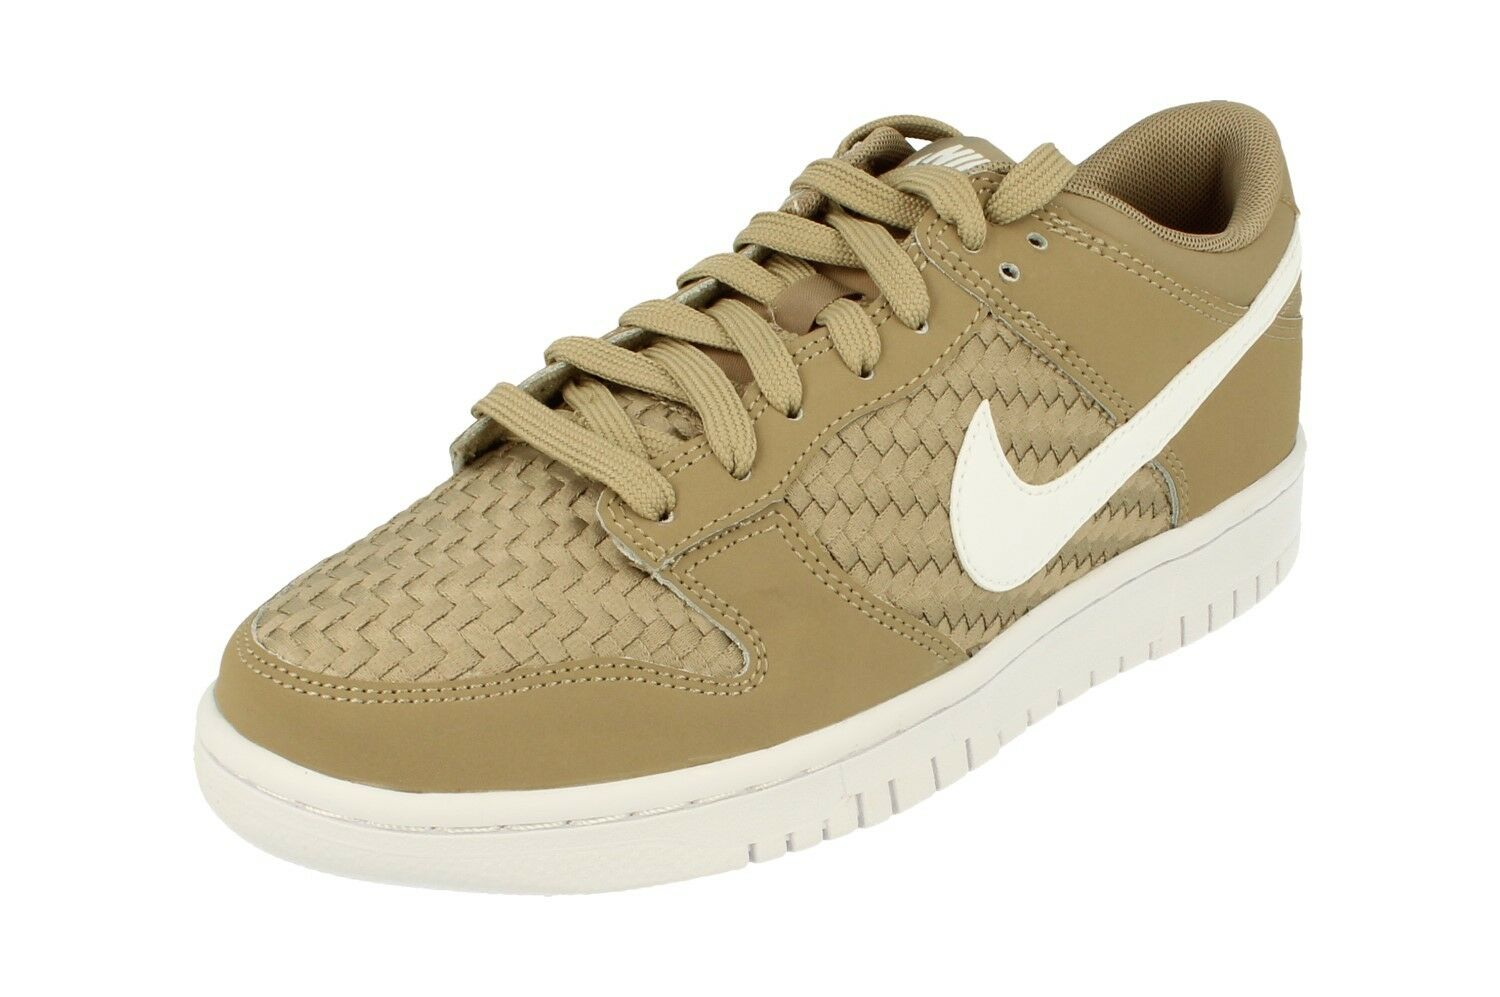 Nike Dunk Low Mens Shoes Trainers 904234 Sneakers Shoes Mens 200 126ed1